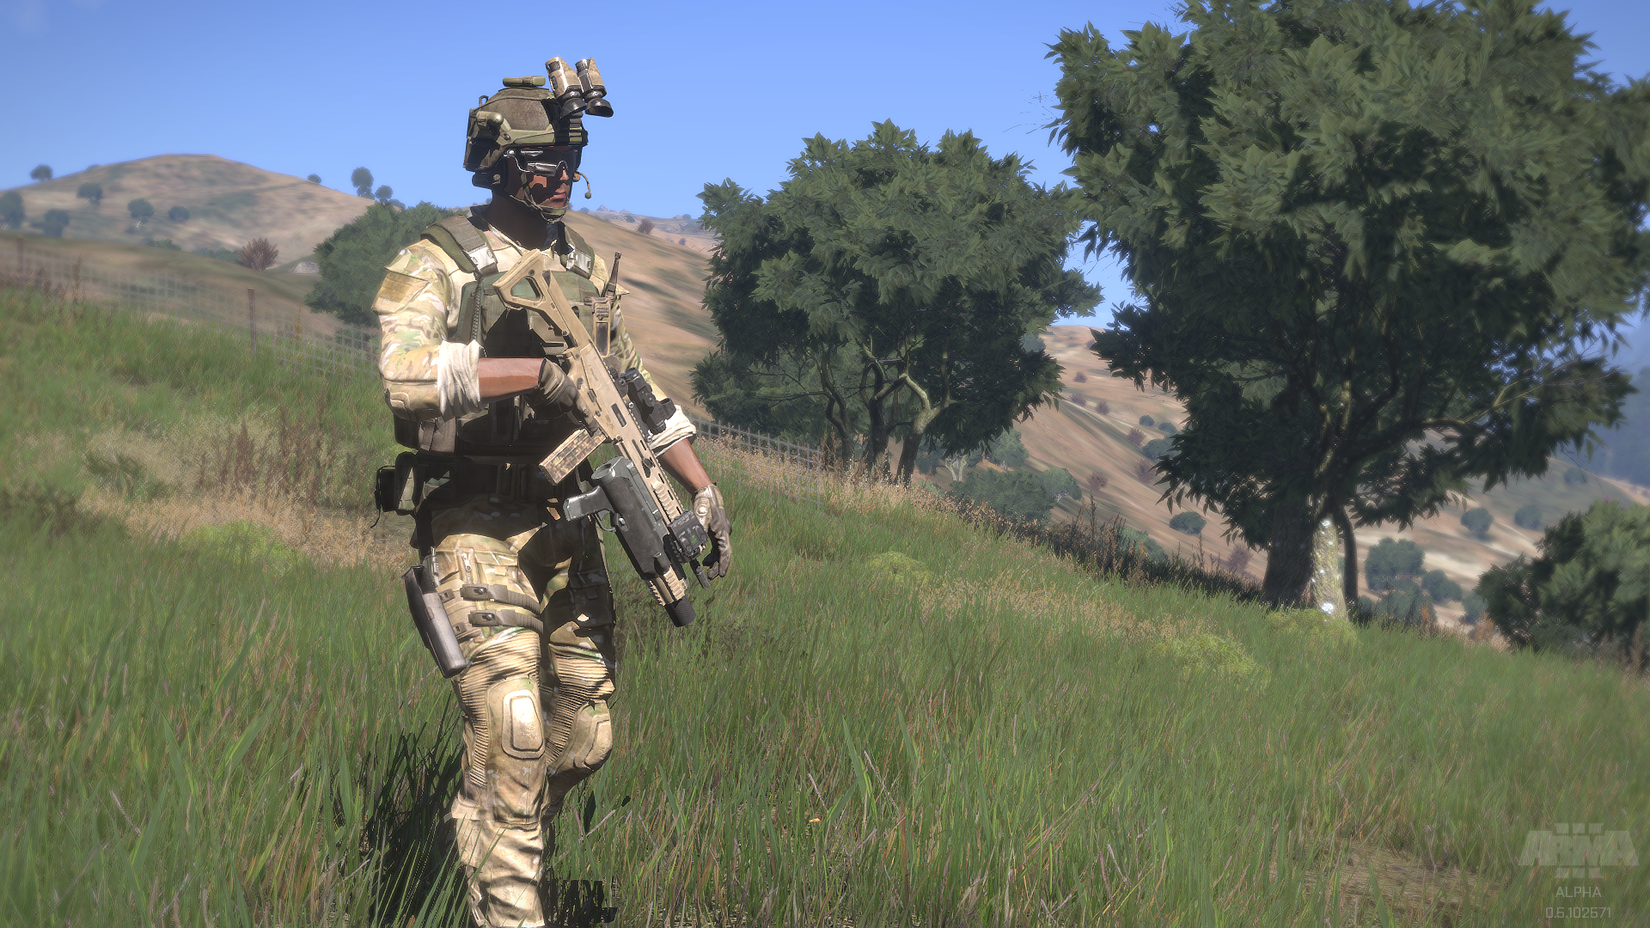 Arma 3 Server View Distance a little more from arma 3 - simhq forums